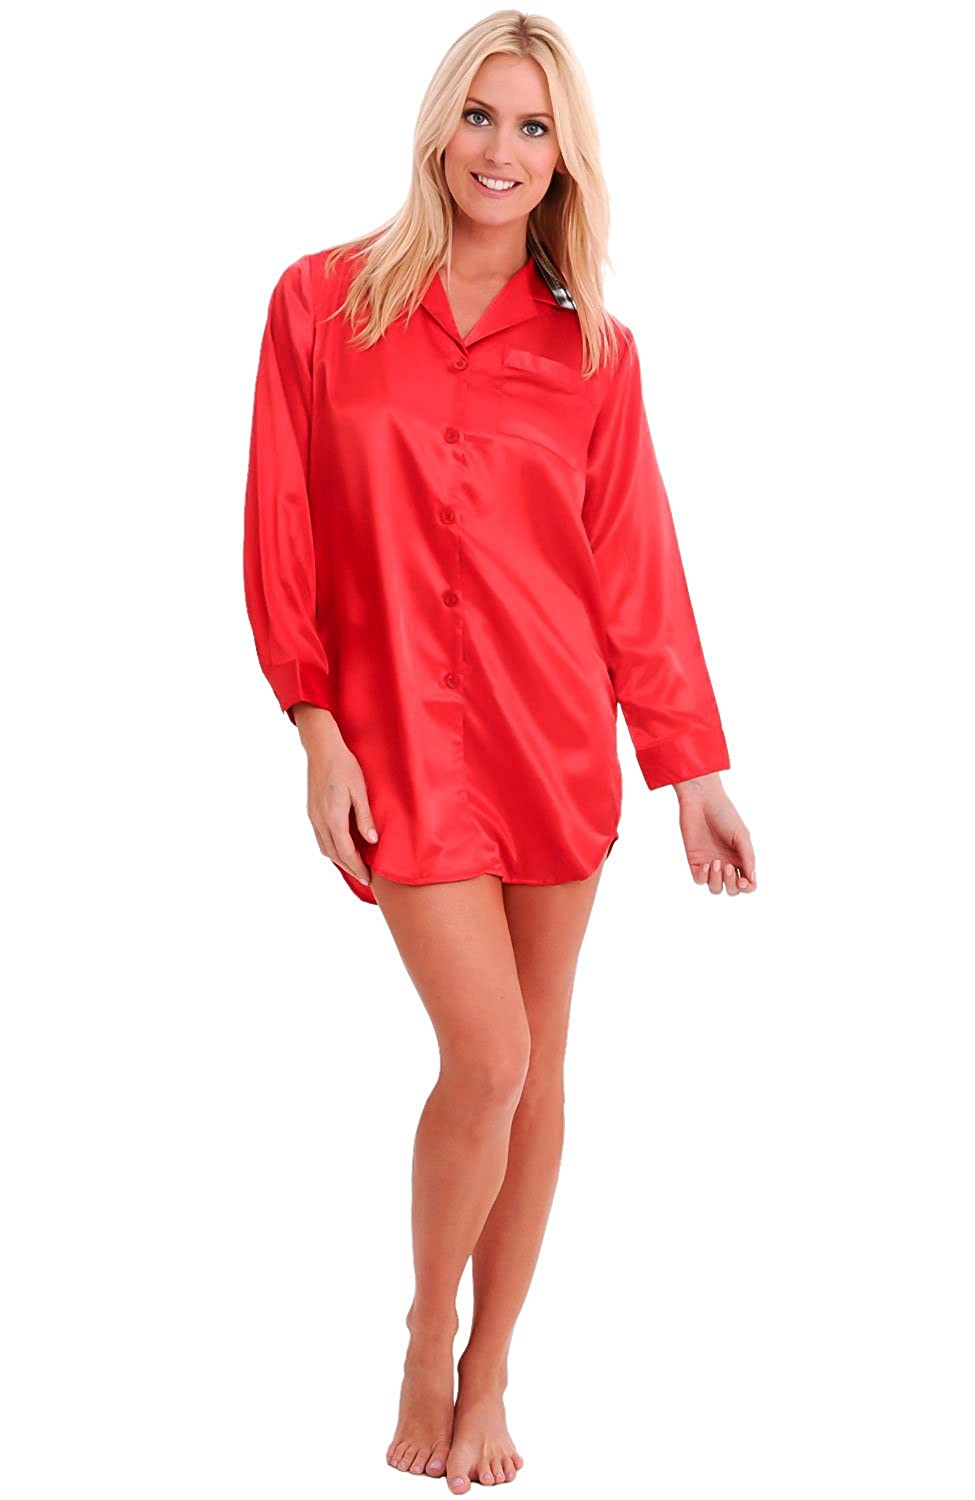 Del Rossa Womens Satin Solid Color Nightshirt, Boyfriend Style Sleepshirt with Mask A0746-Solid